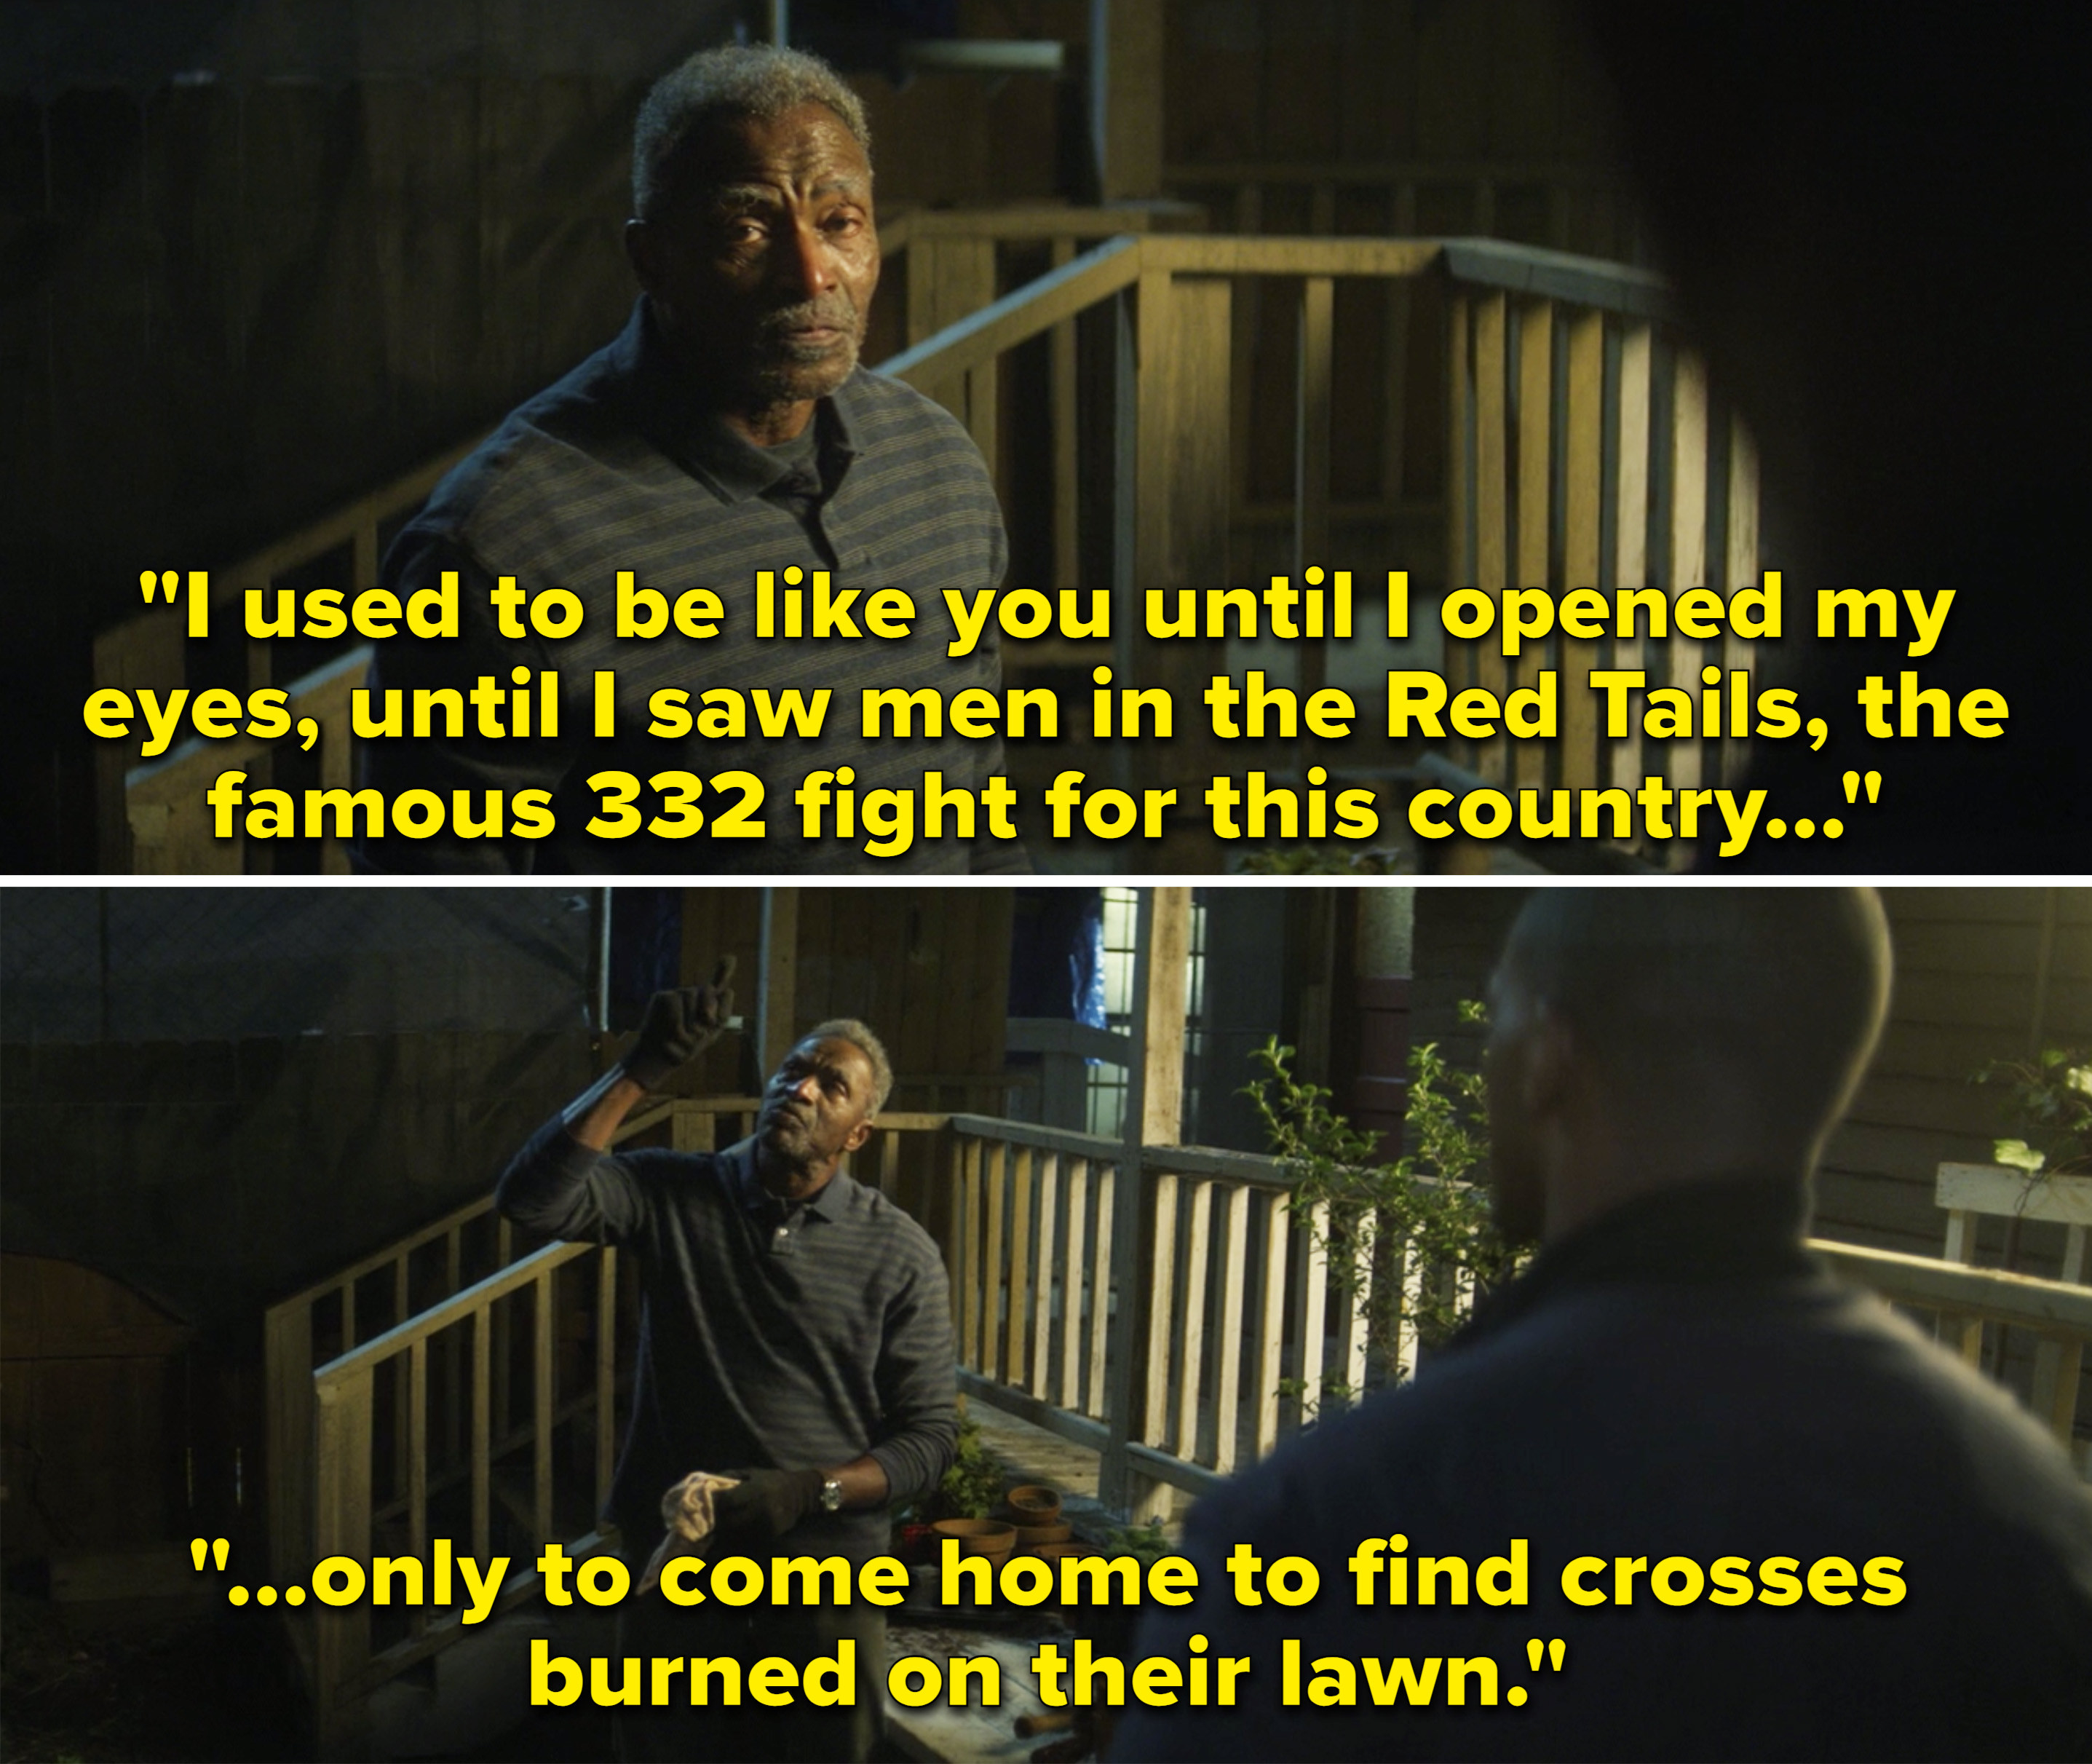 """Isaiah saying he used to be like Sam until he saw the Red Tails and the famous 332 """"fight for this country only to come home to find crosses burned on their lawn"""""""